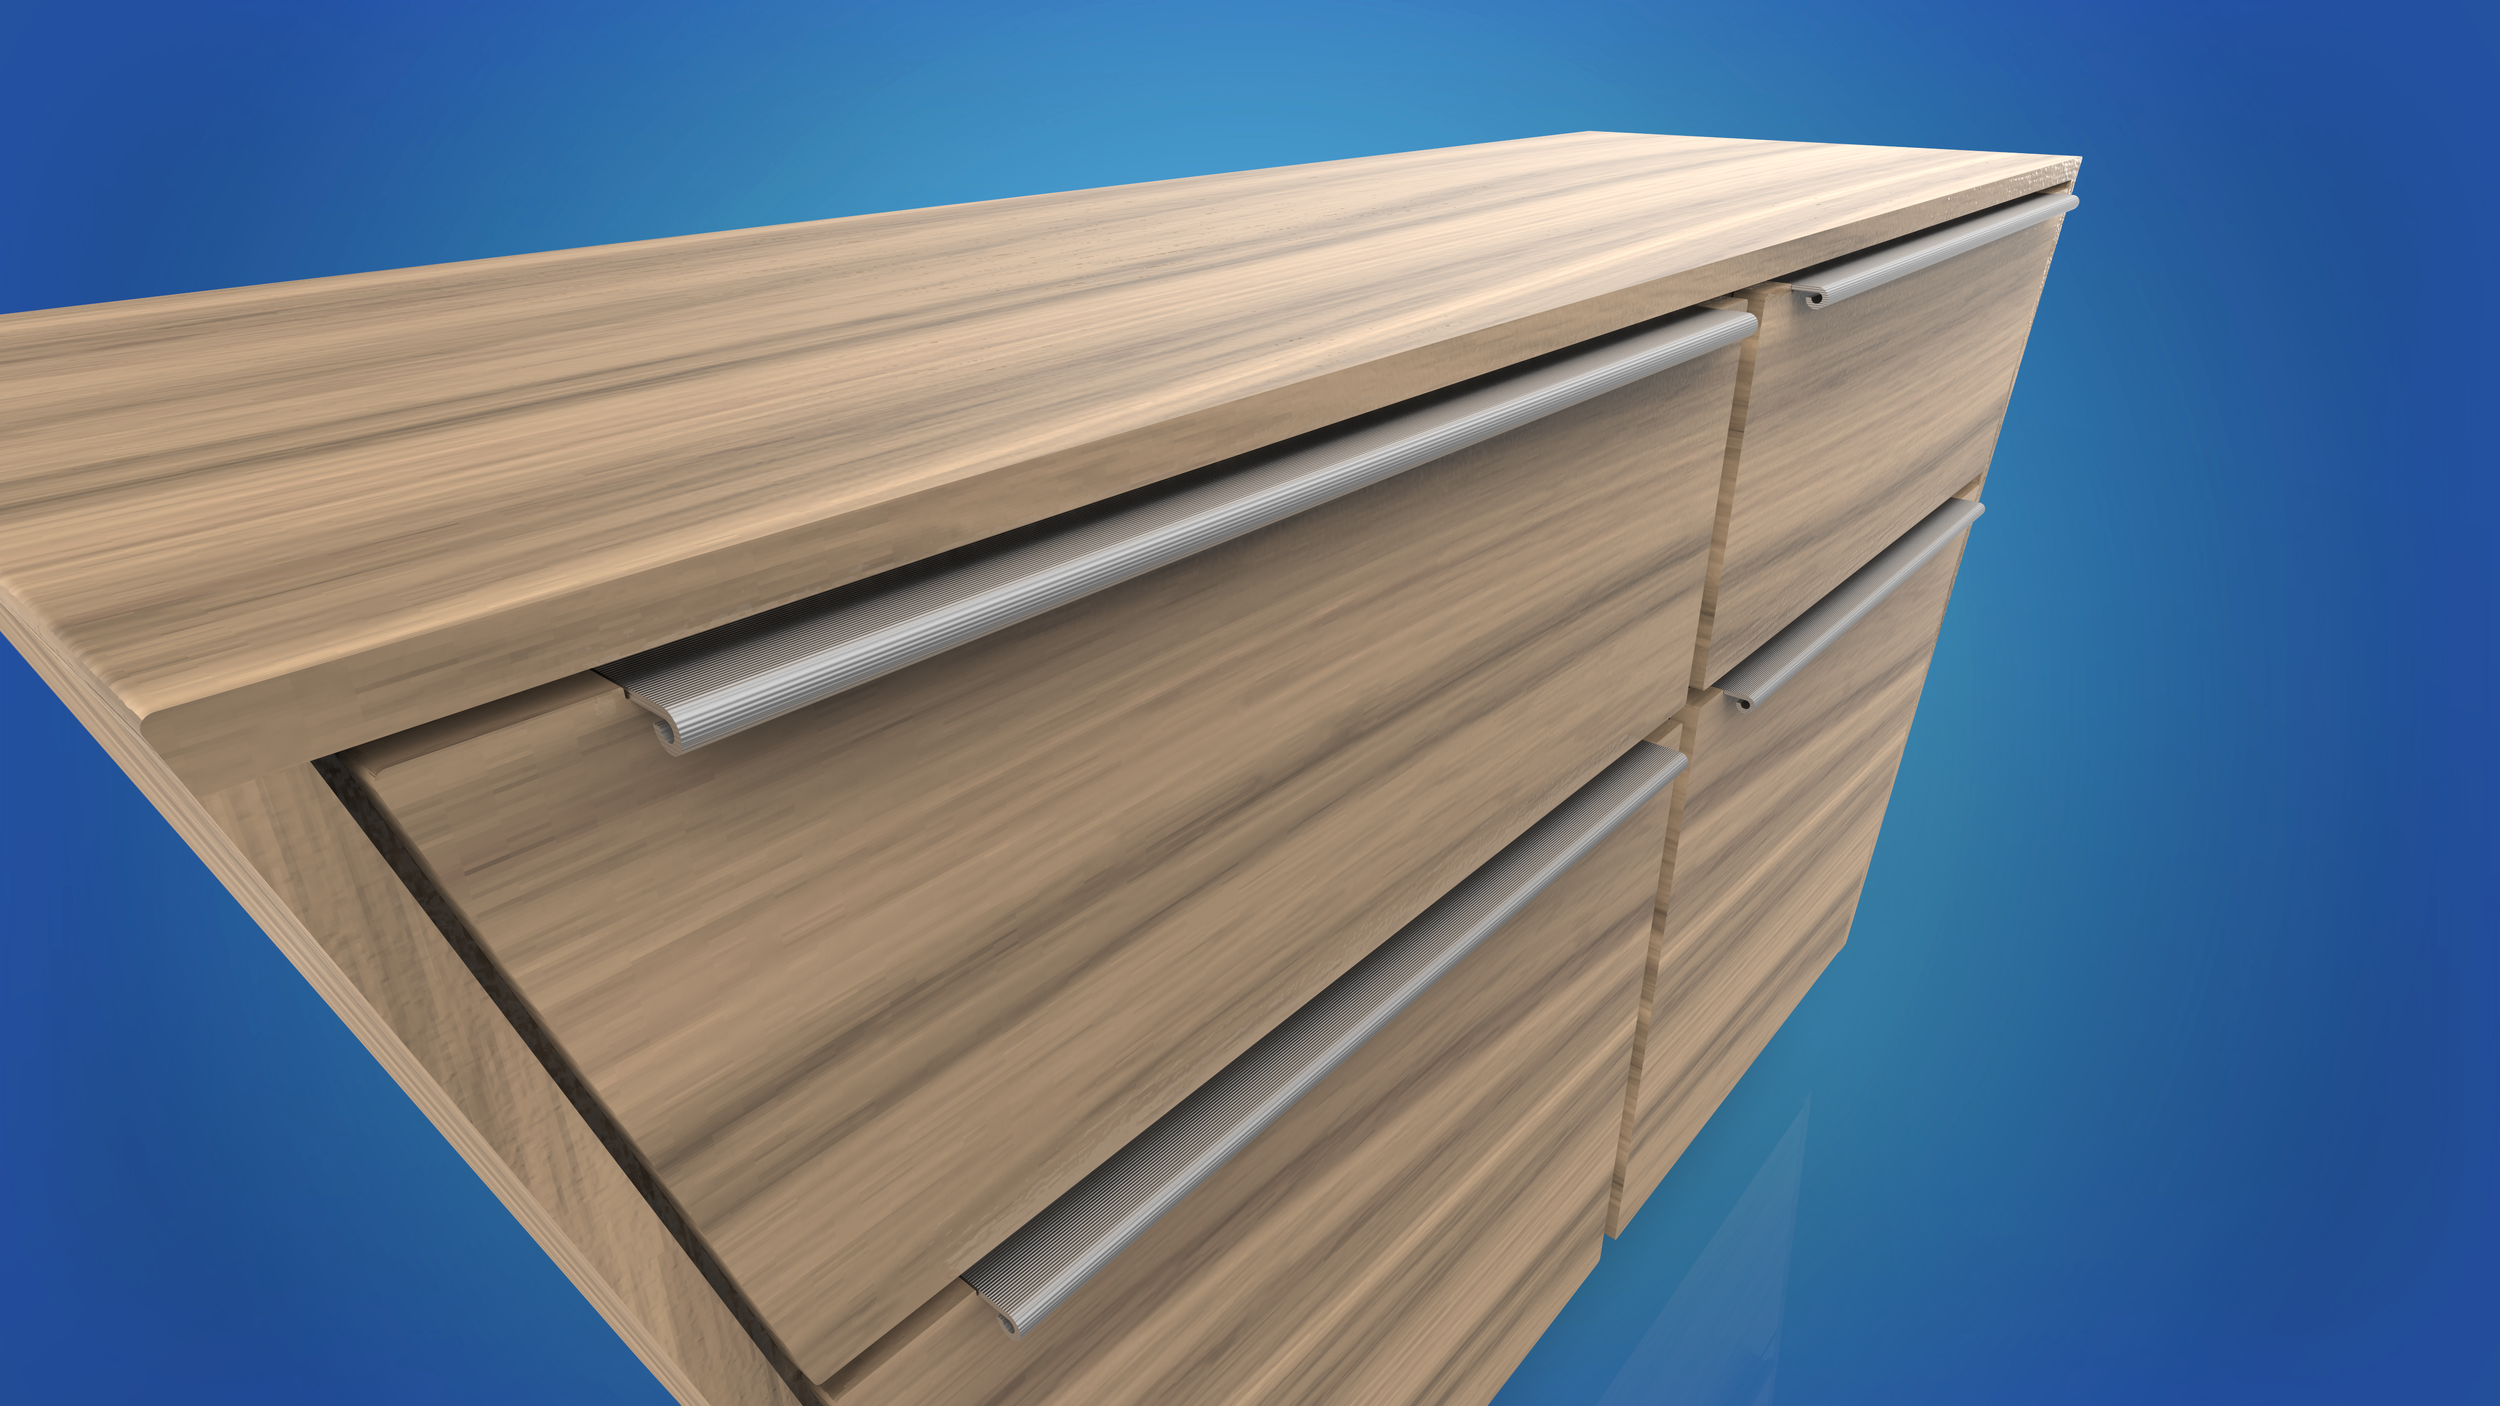 The textured drawer pulls insure a tight grip when opening a drawer.